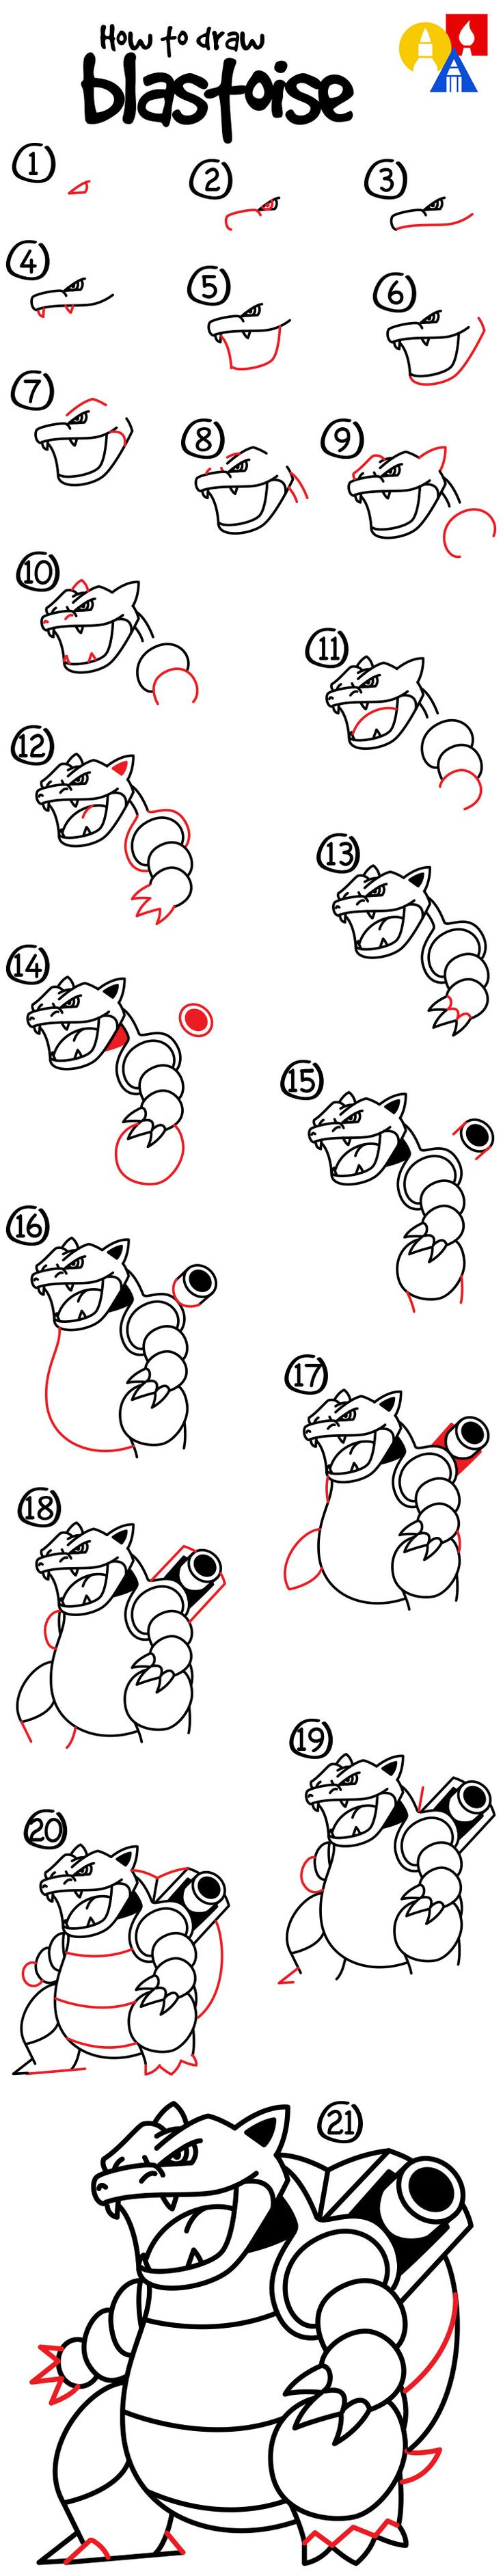 How to draw Blastoise from Pokemon!